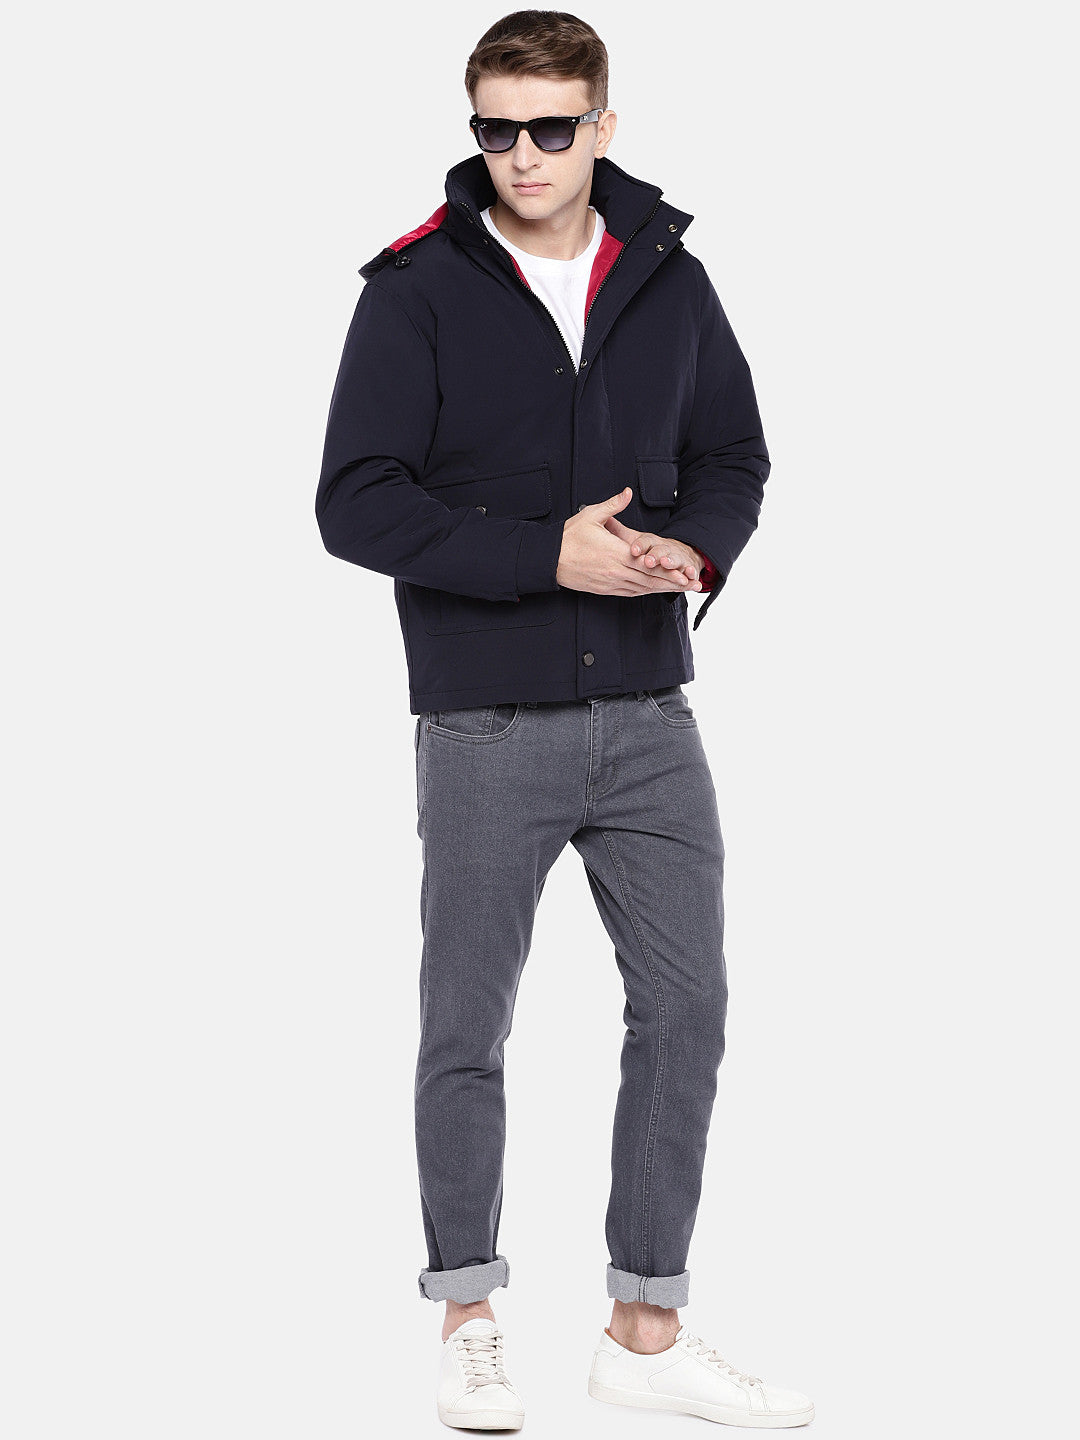 Navy Blue Solid Sporty Jacket-4